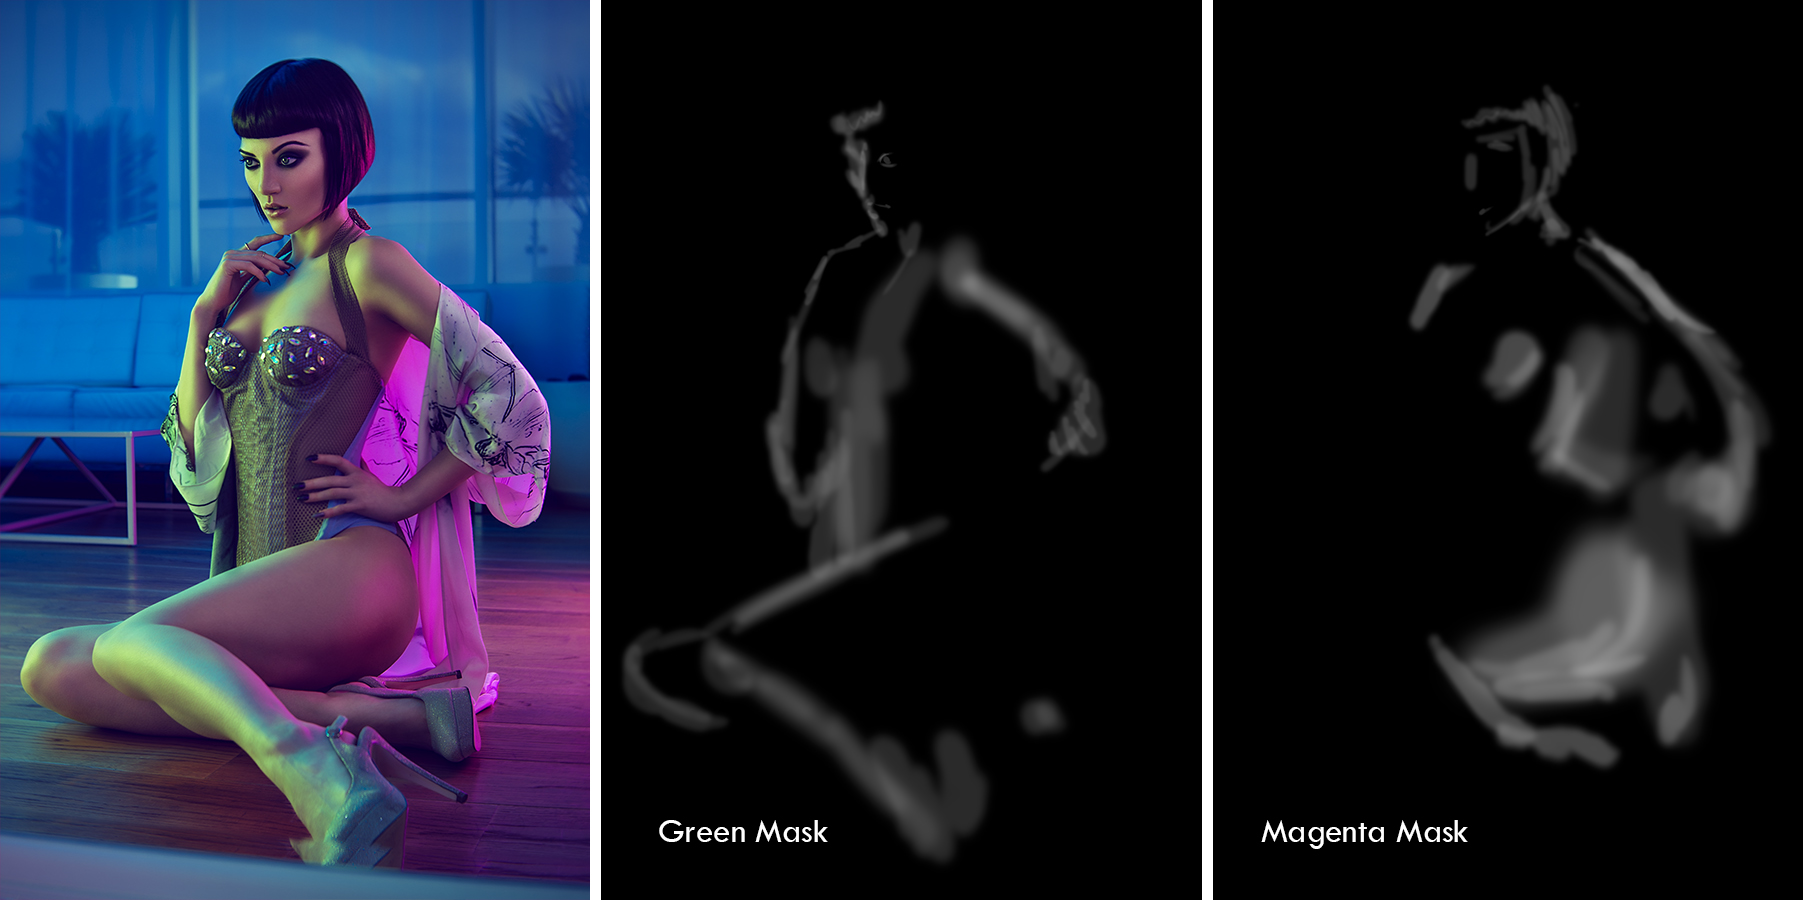 This time I am using a Green Adjustment Mask and a Magenta Adjustment Mask.